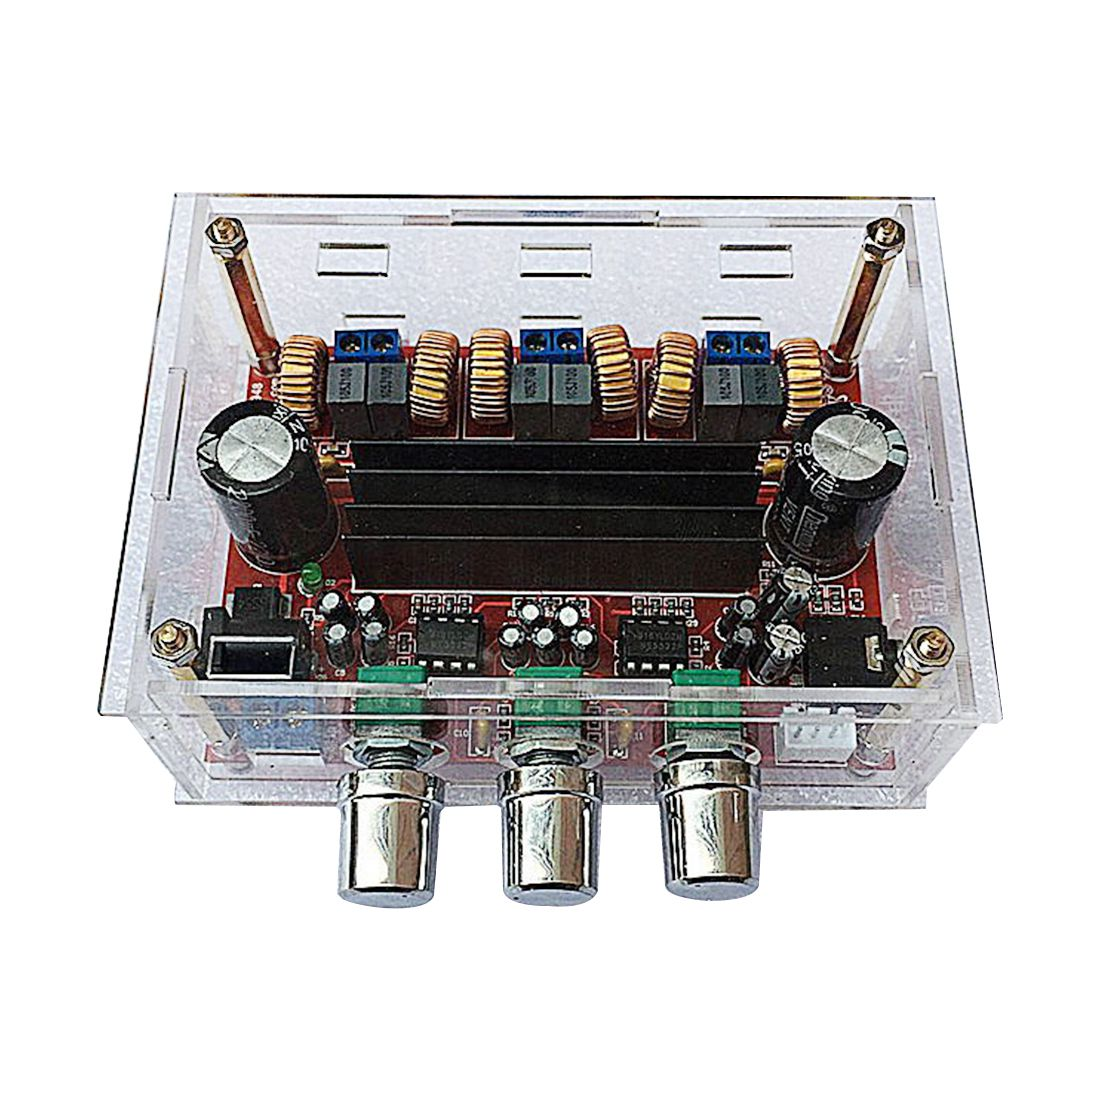 FULL-DC12-24V <font><b>TPA3116D2</b></font> <font><b>2.1</b></font> Channel Digital <font><b>Subwoofer</b></font> Power Amplifier Board+case image